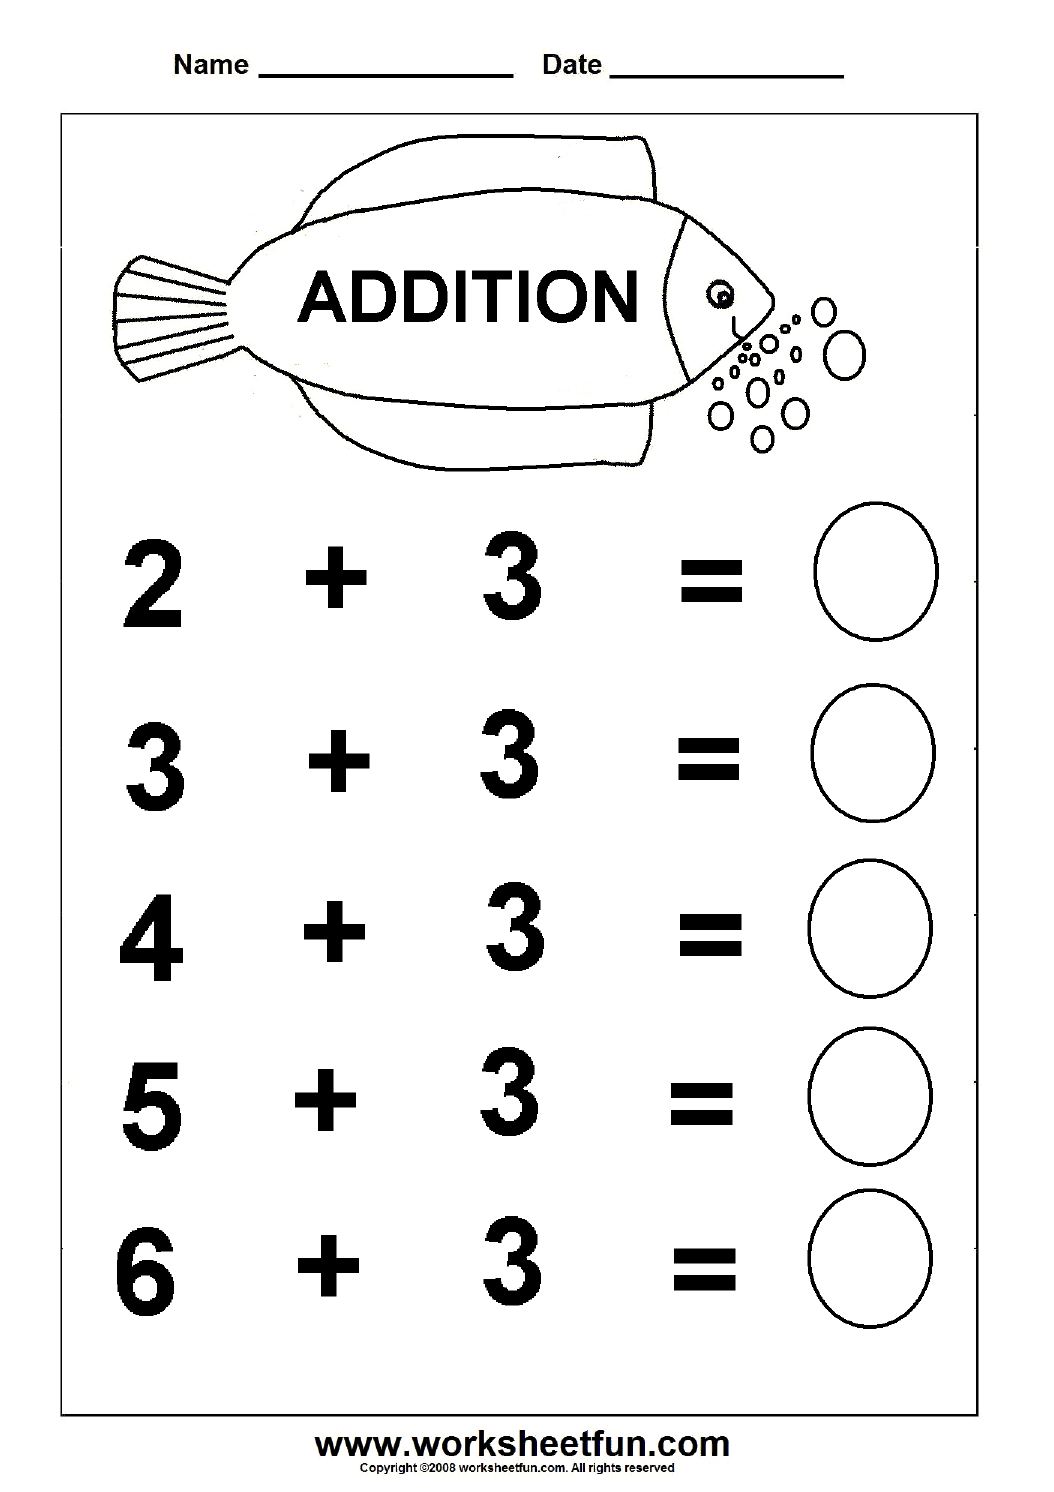 Beginner Addition – 6 Kindergarten Addition Worksheets / Free | Free Printable Preschool Addition Worksheets